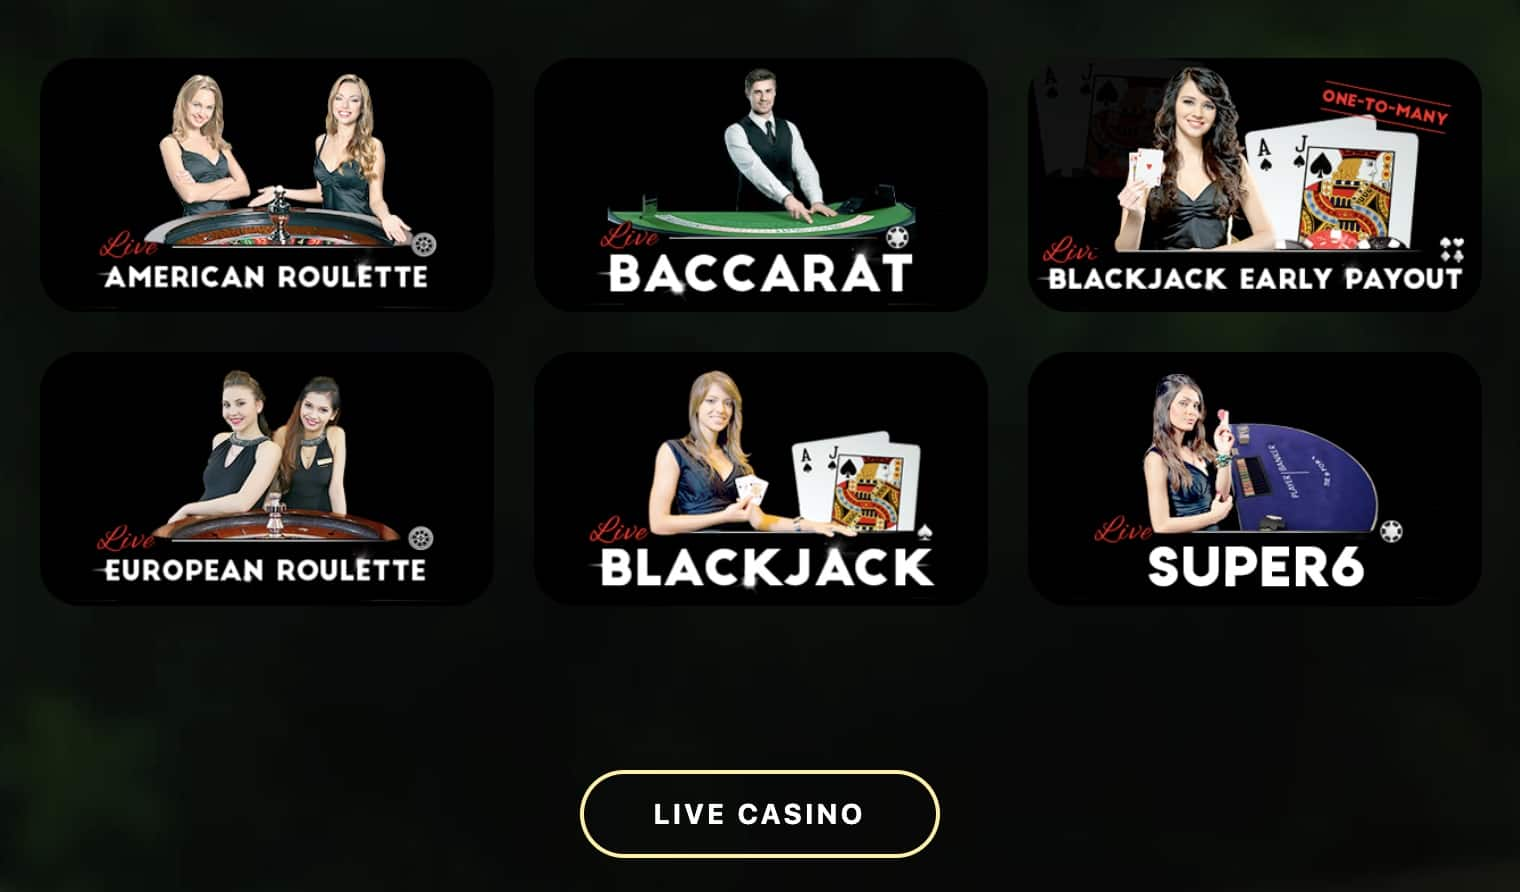 two up casino live dealer games